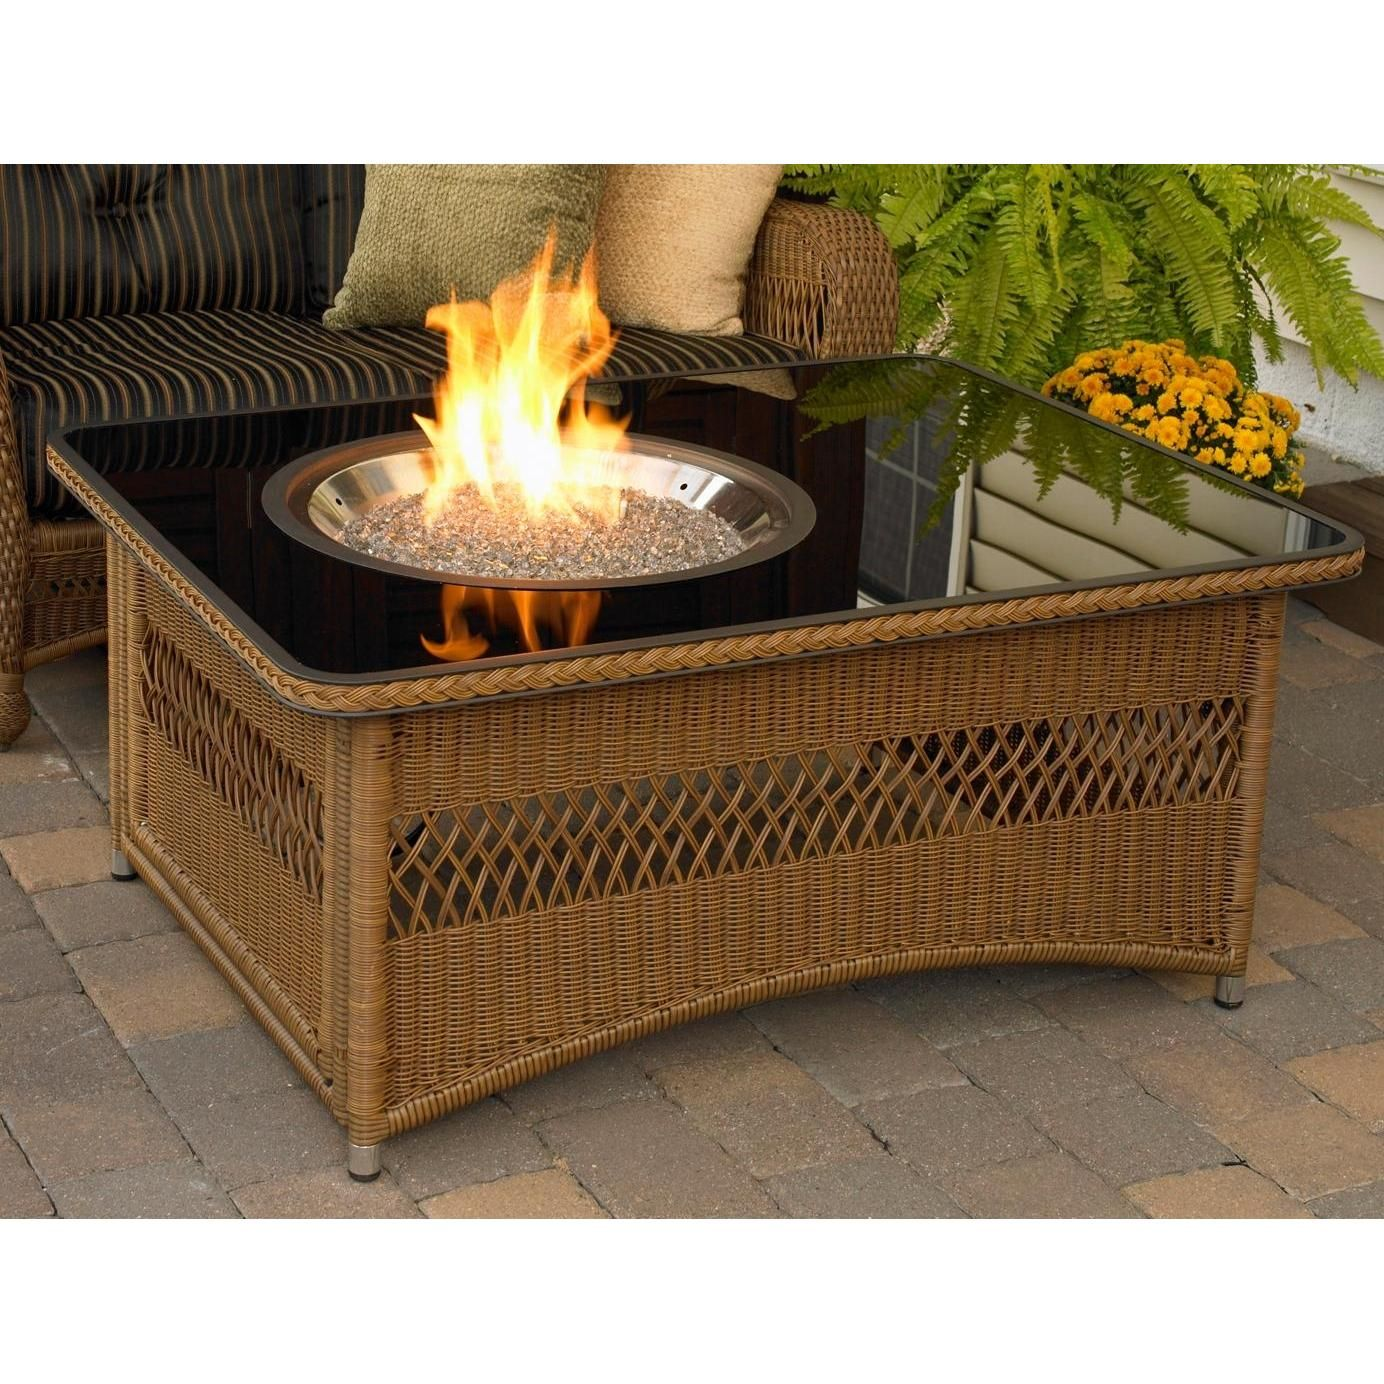 Outdoor greatroom company naples 48 inch natural gas fire pit outdoor greatroom company naples 48 inch natural gas fire pit coffee table with black glass top geotapseo Choice Image